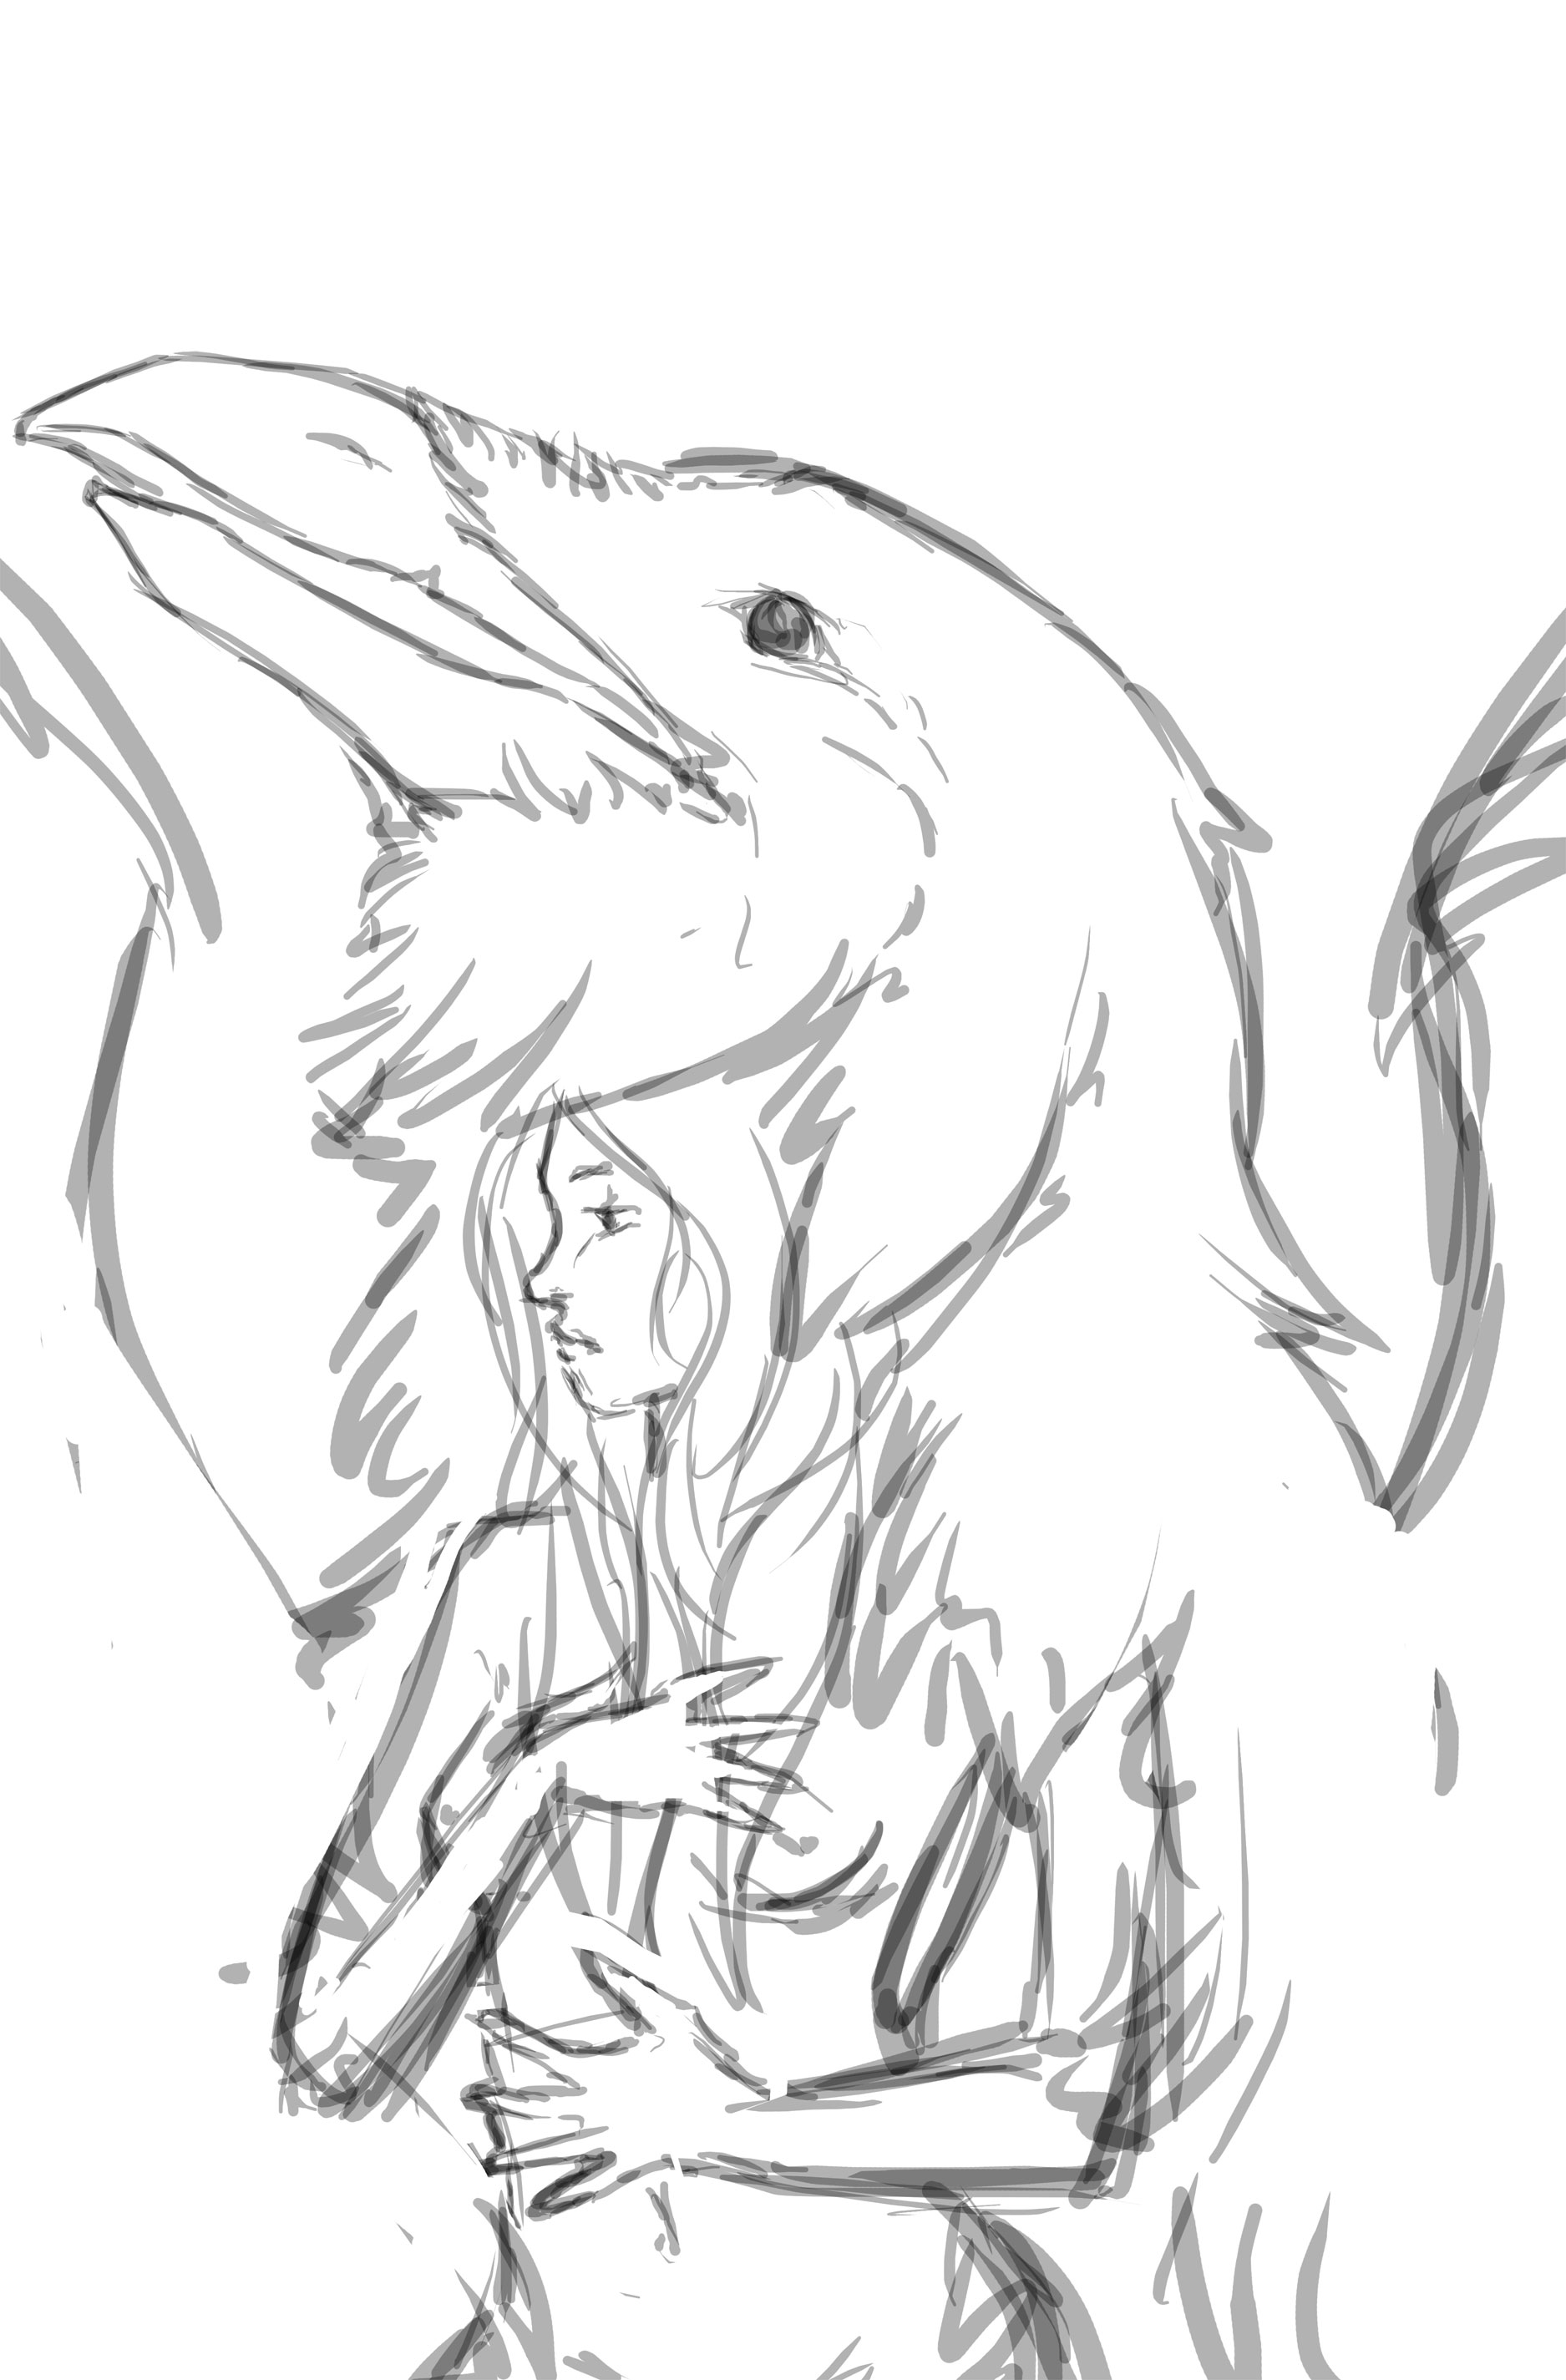 Drawn raven spirit animal Sketch) have rough the super